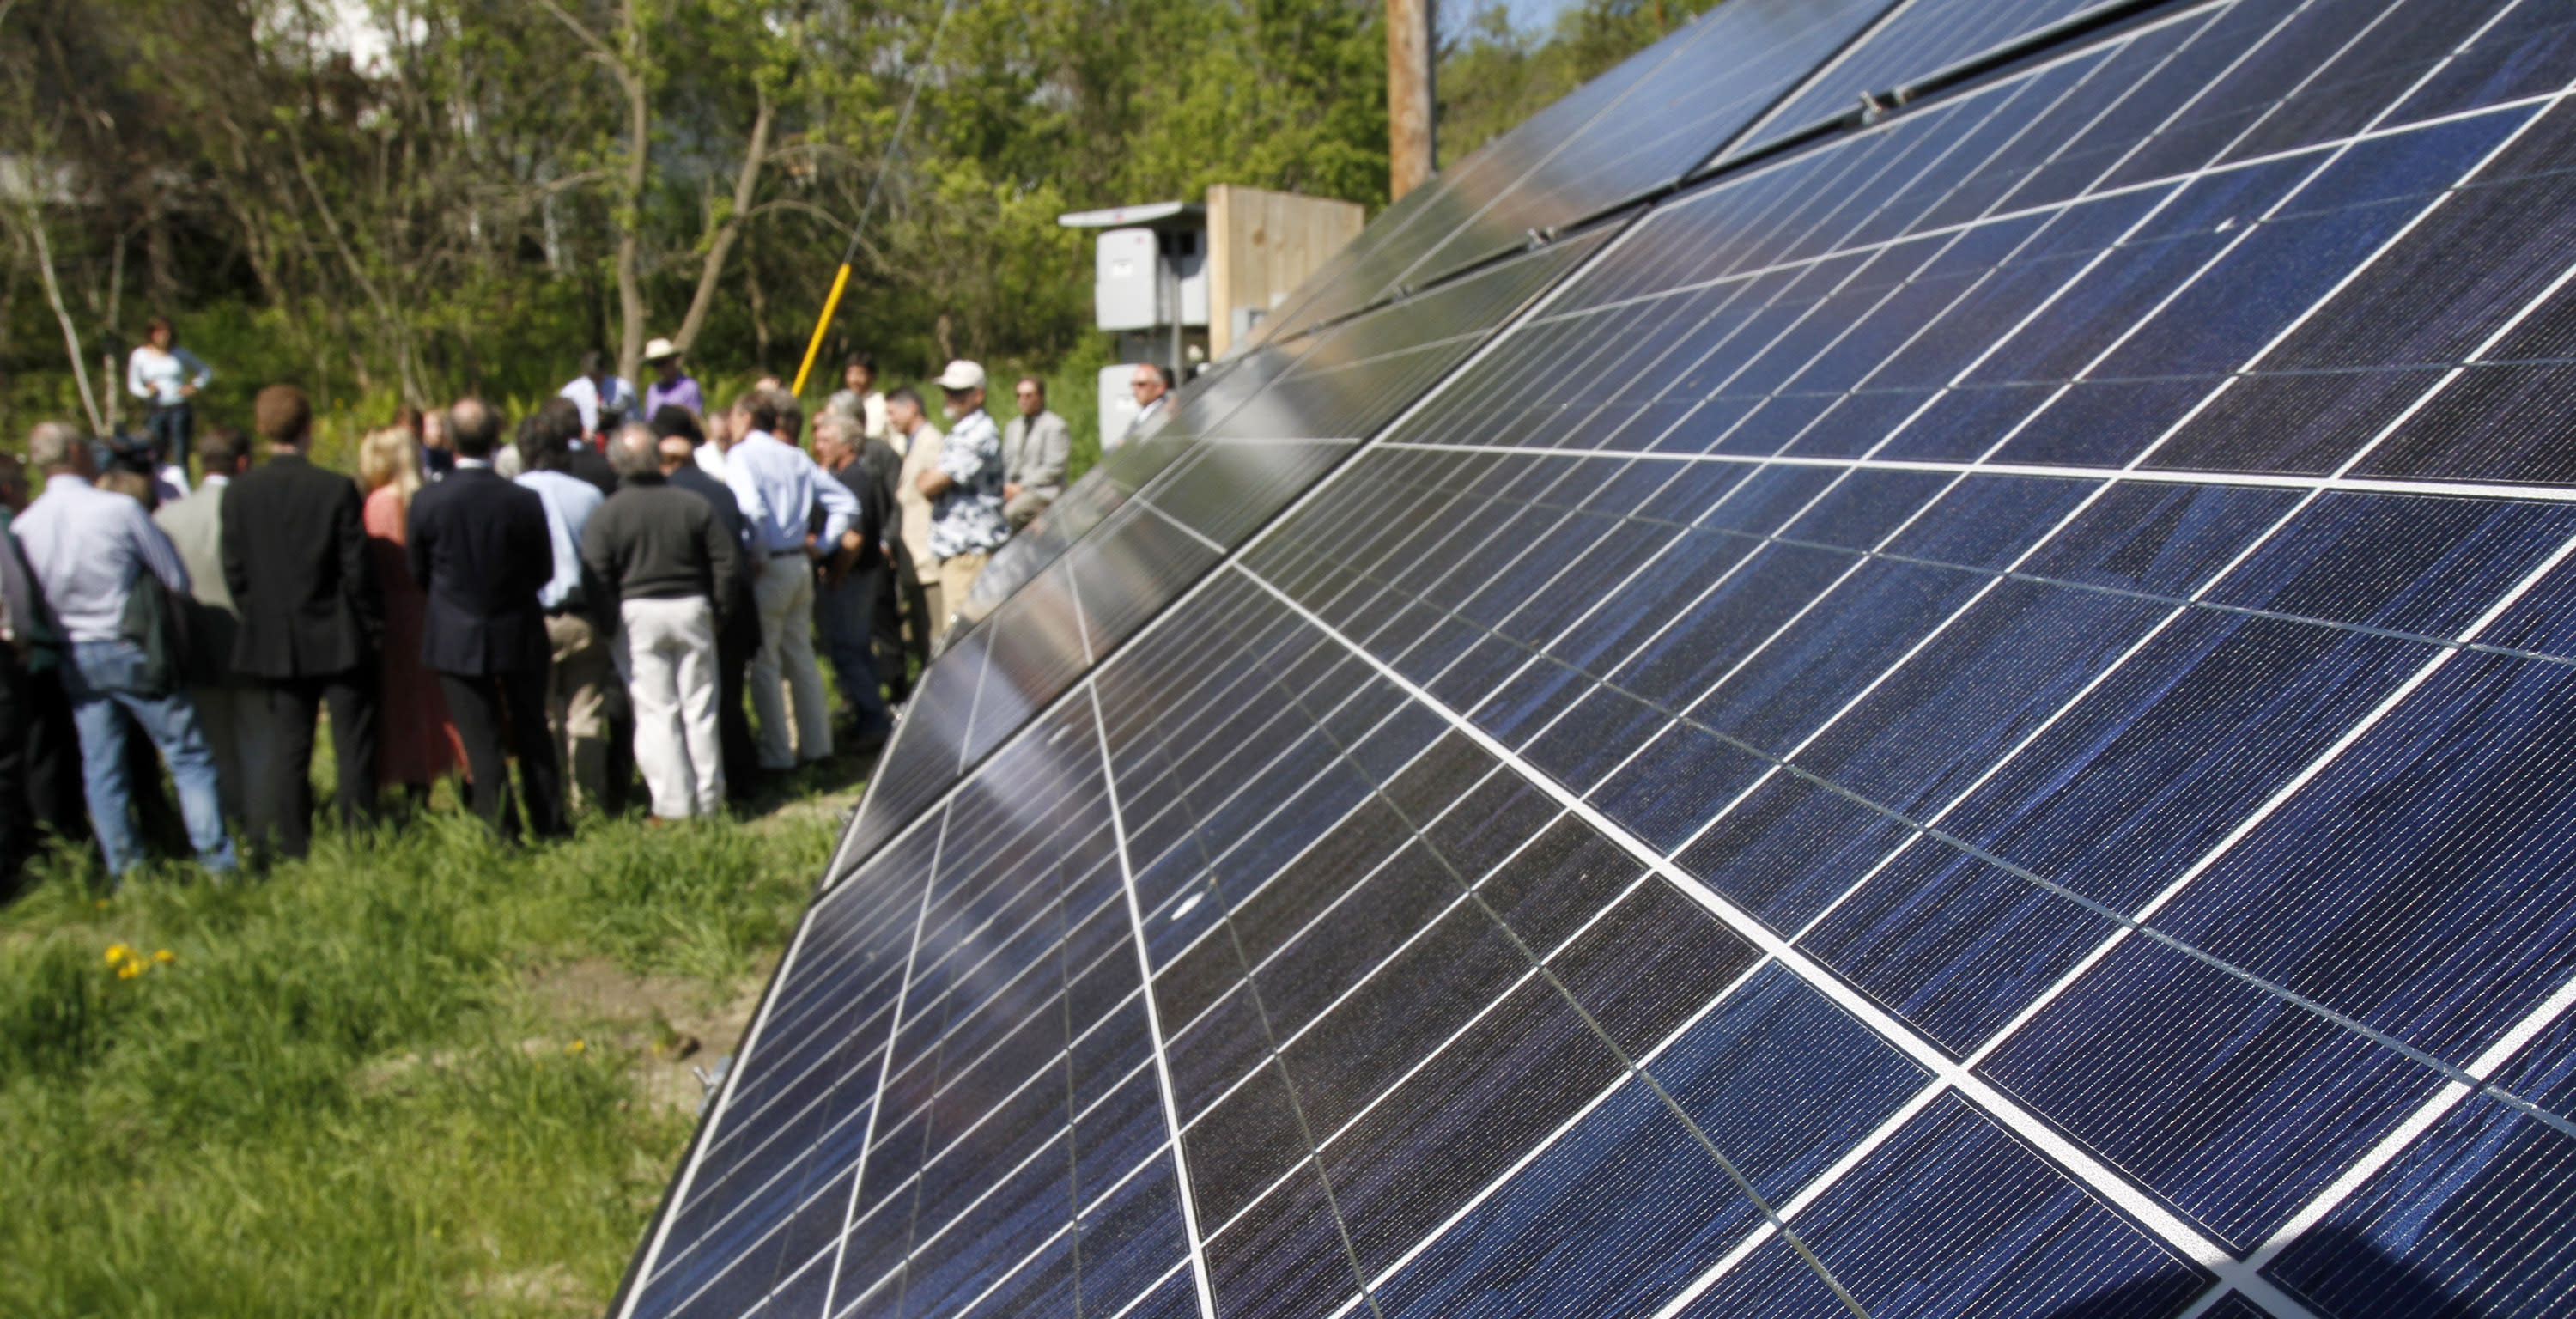 First Solar-SunPower fire up joint venture, Comcast talks Time Warner Cable deal & Lowe